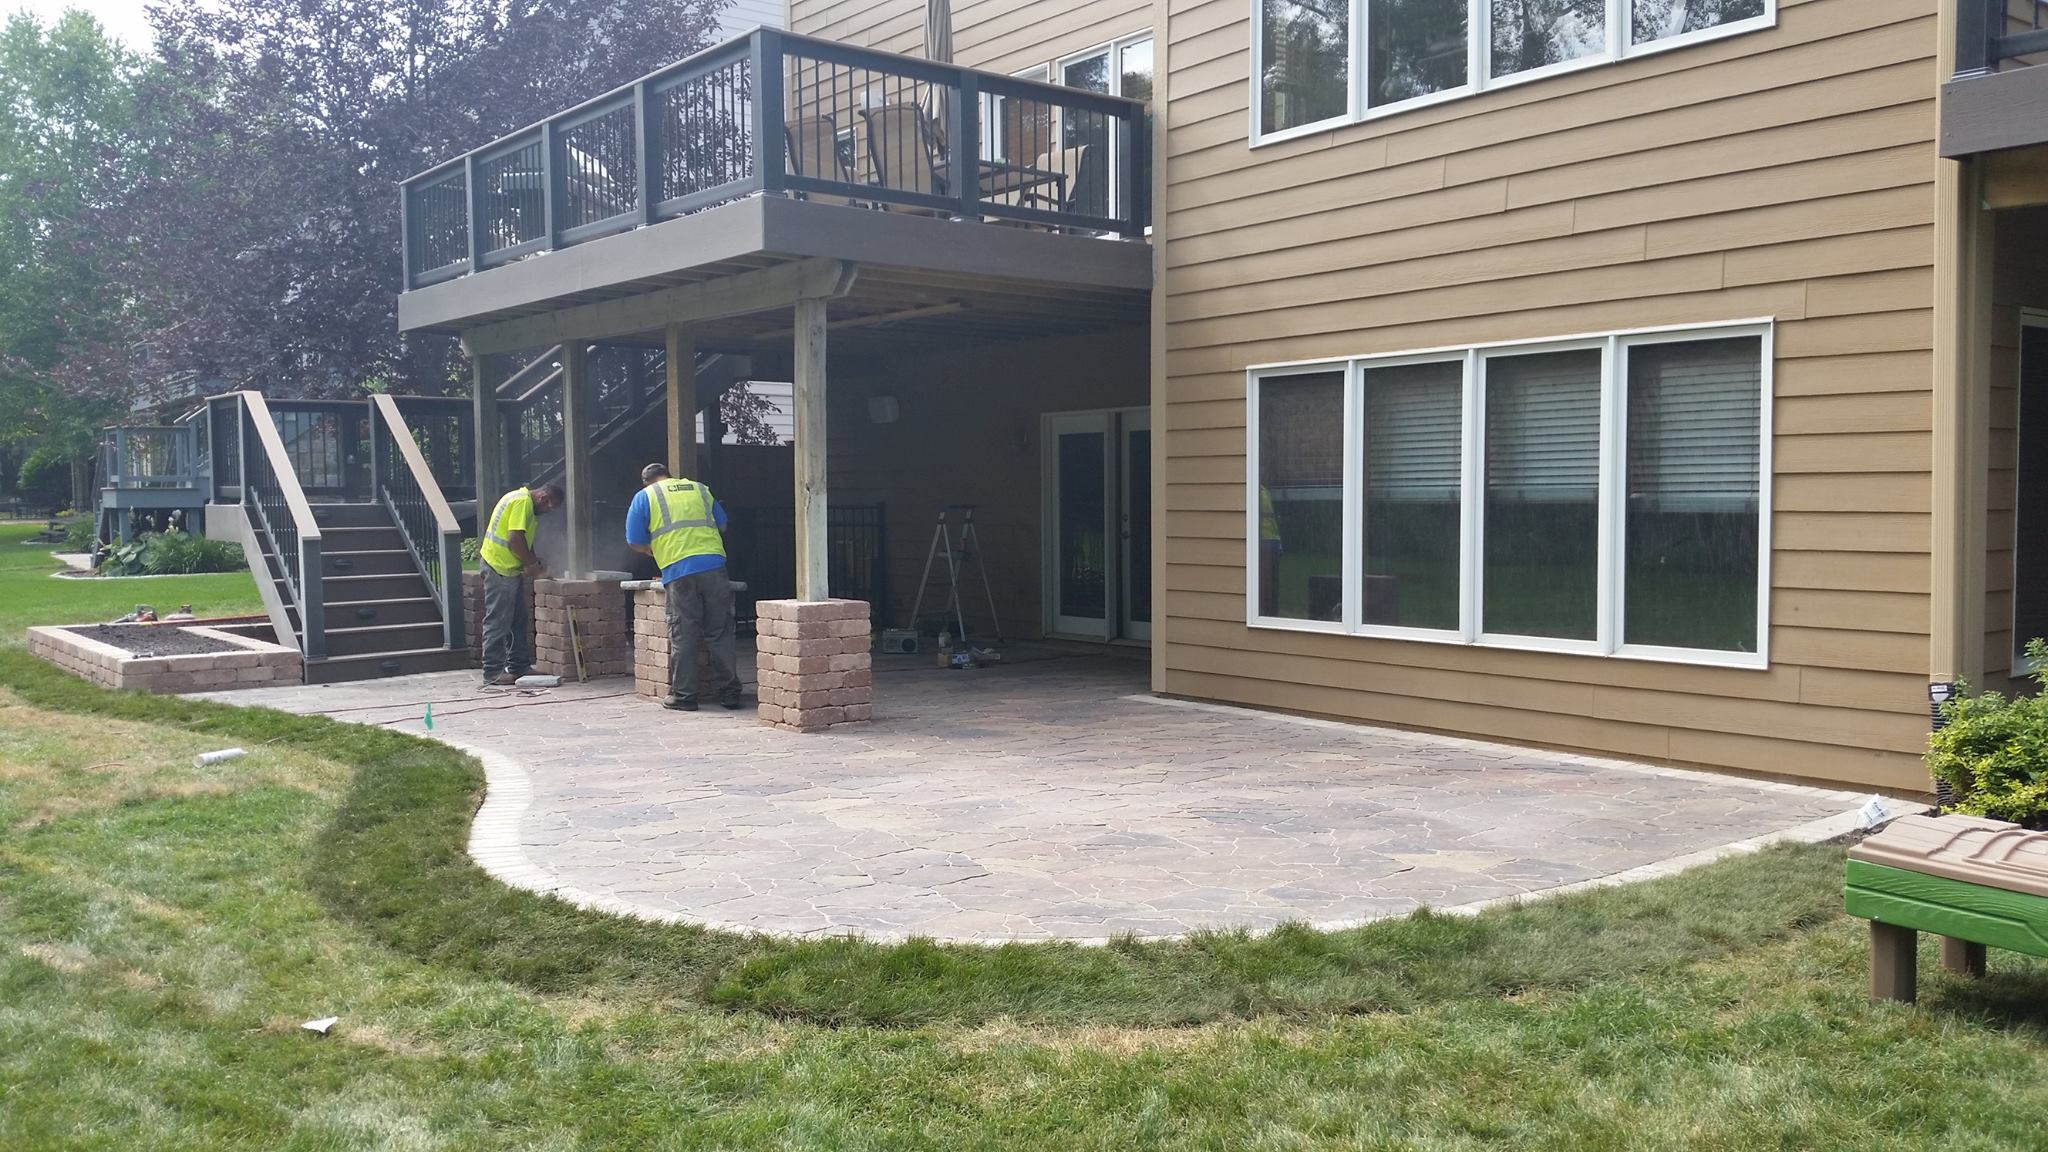 double decks under deck system and new stone patio des moines deck builder deck and drive solutions - Patio Under Deck